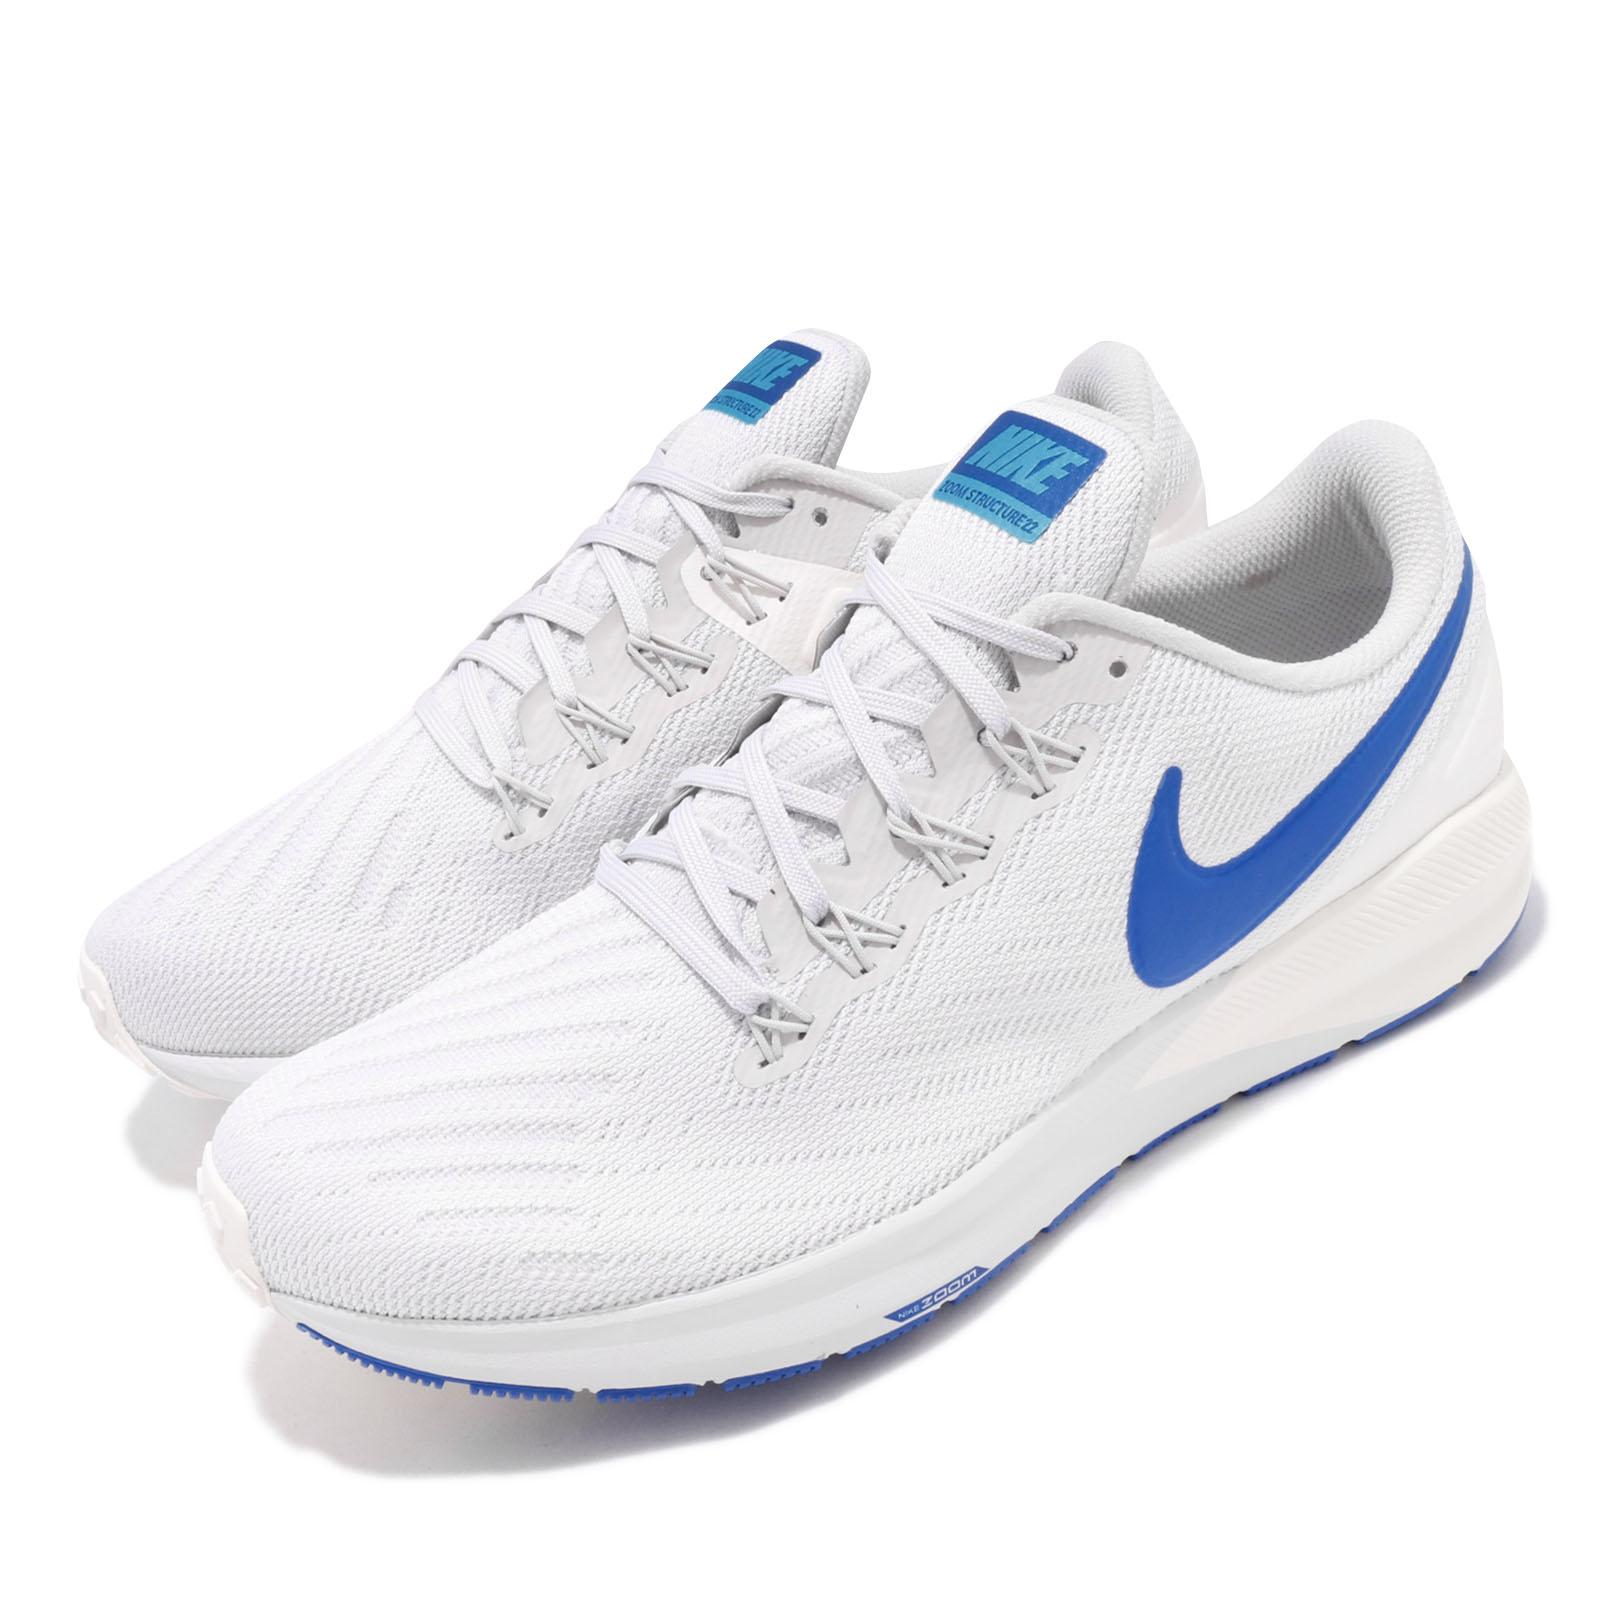 Details about Nike Air Zoom Structure 22 Grey Game Royal Blue Sail Men Running Shoe AA1636 007